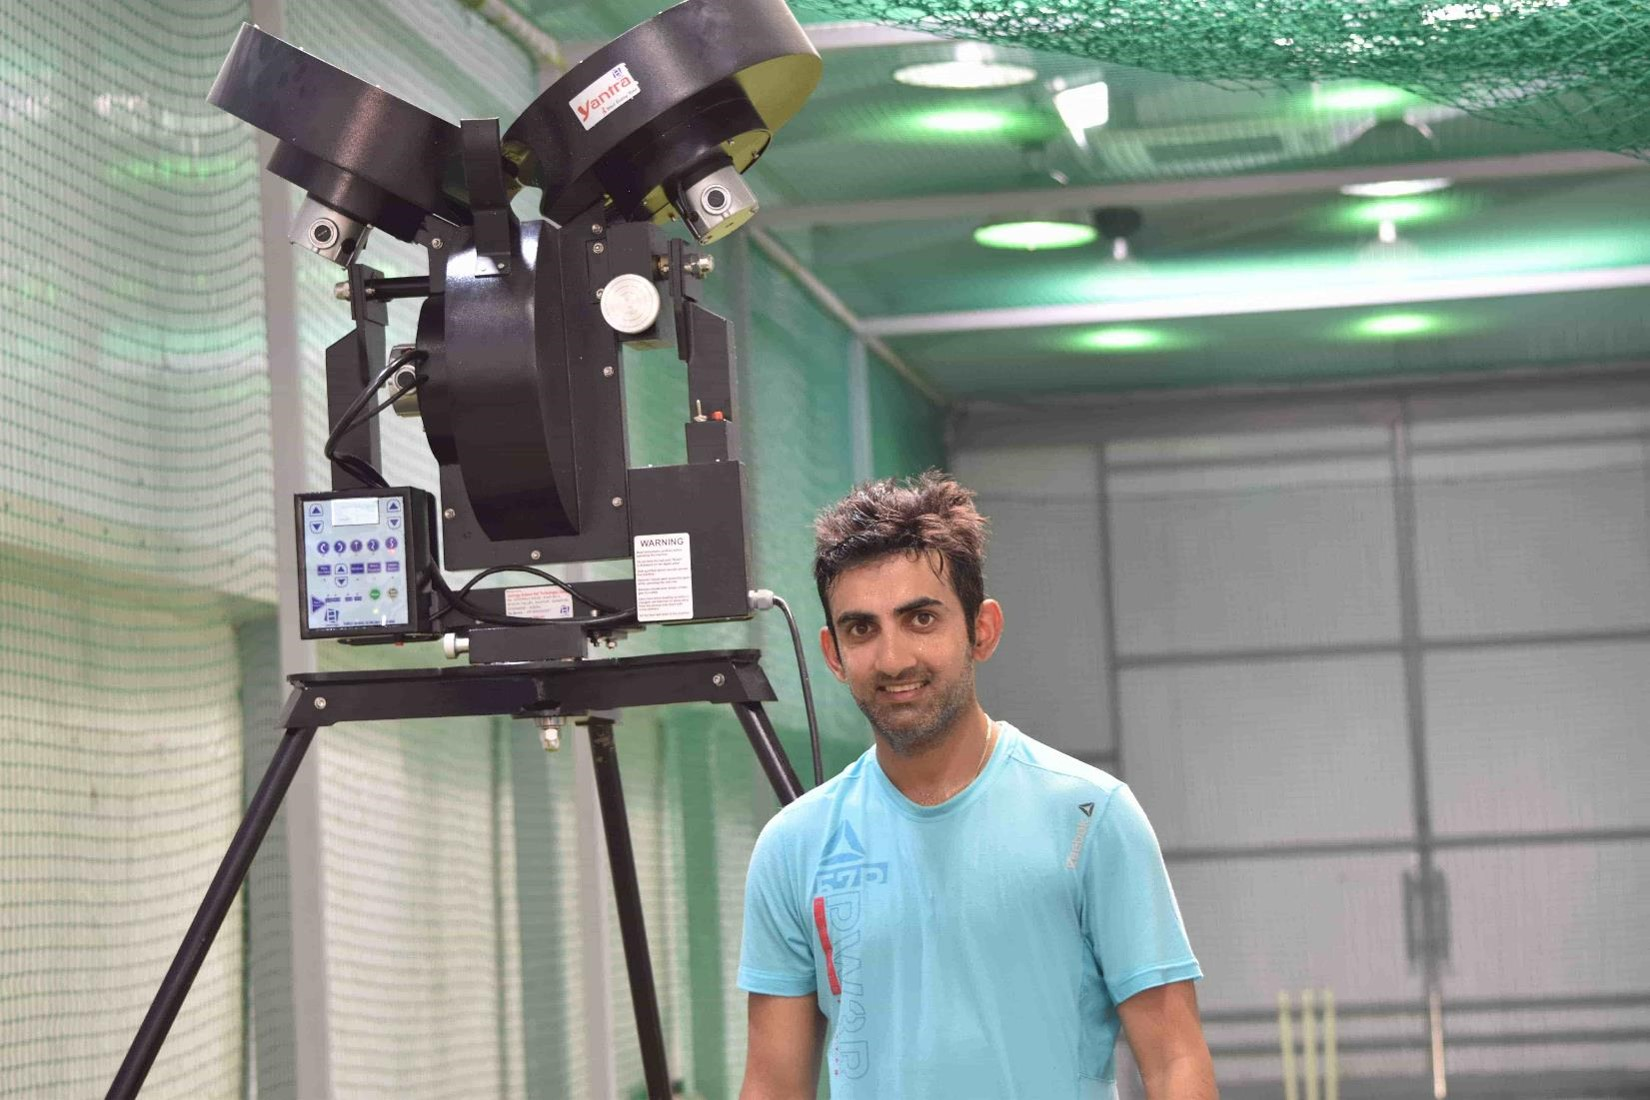 Gautham Gambhir with Leverage Bowling Machine